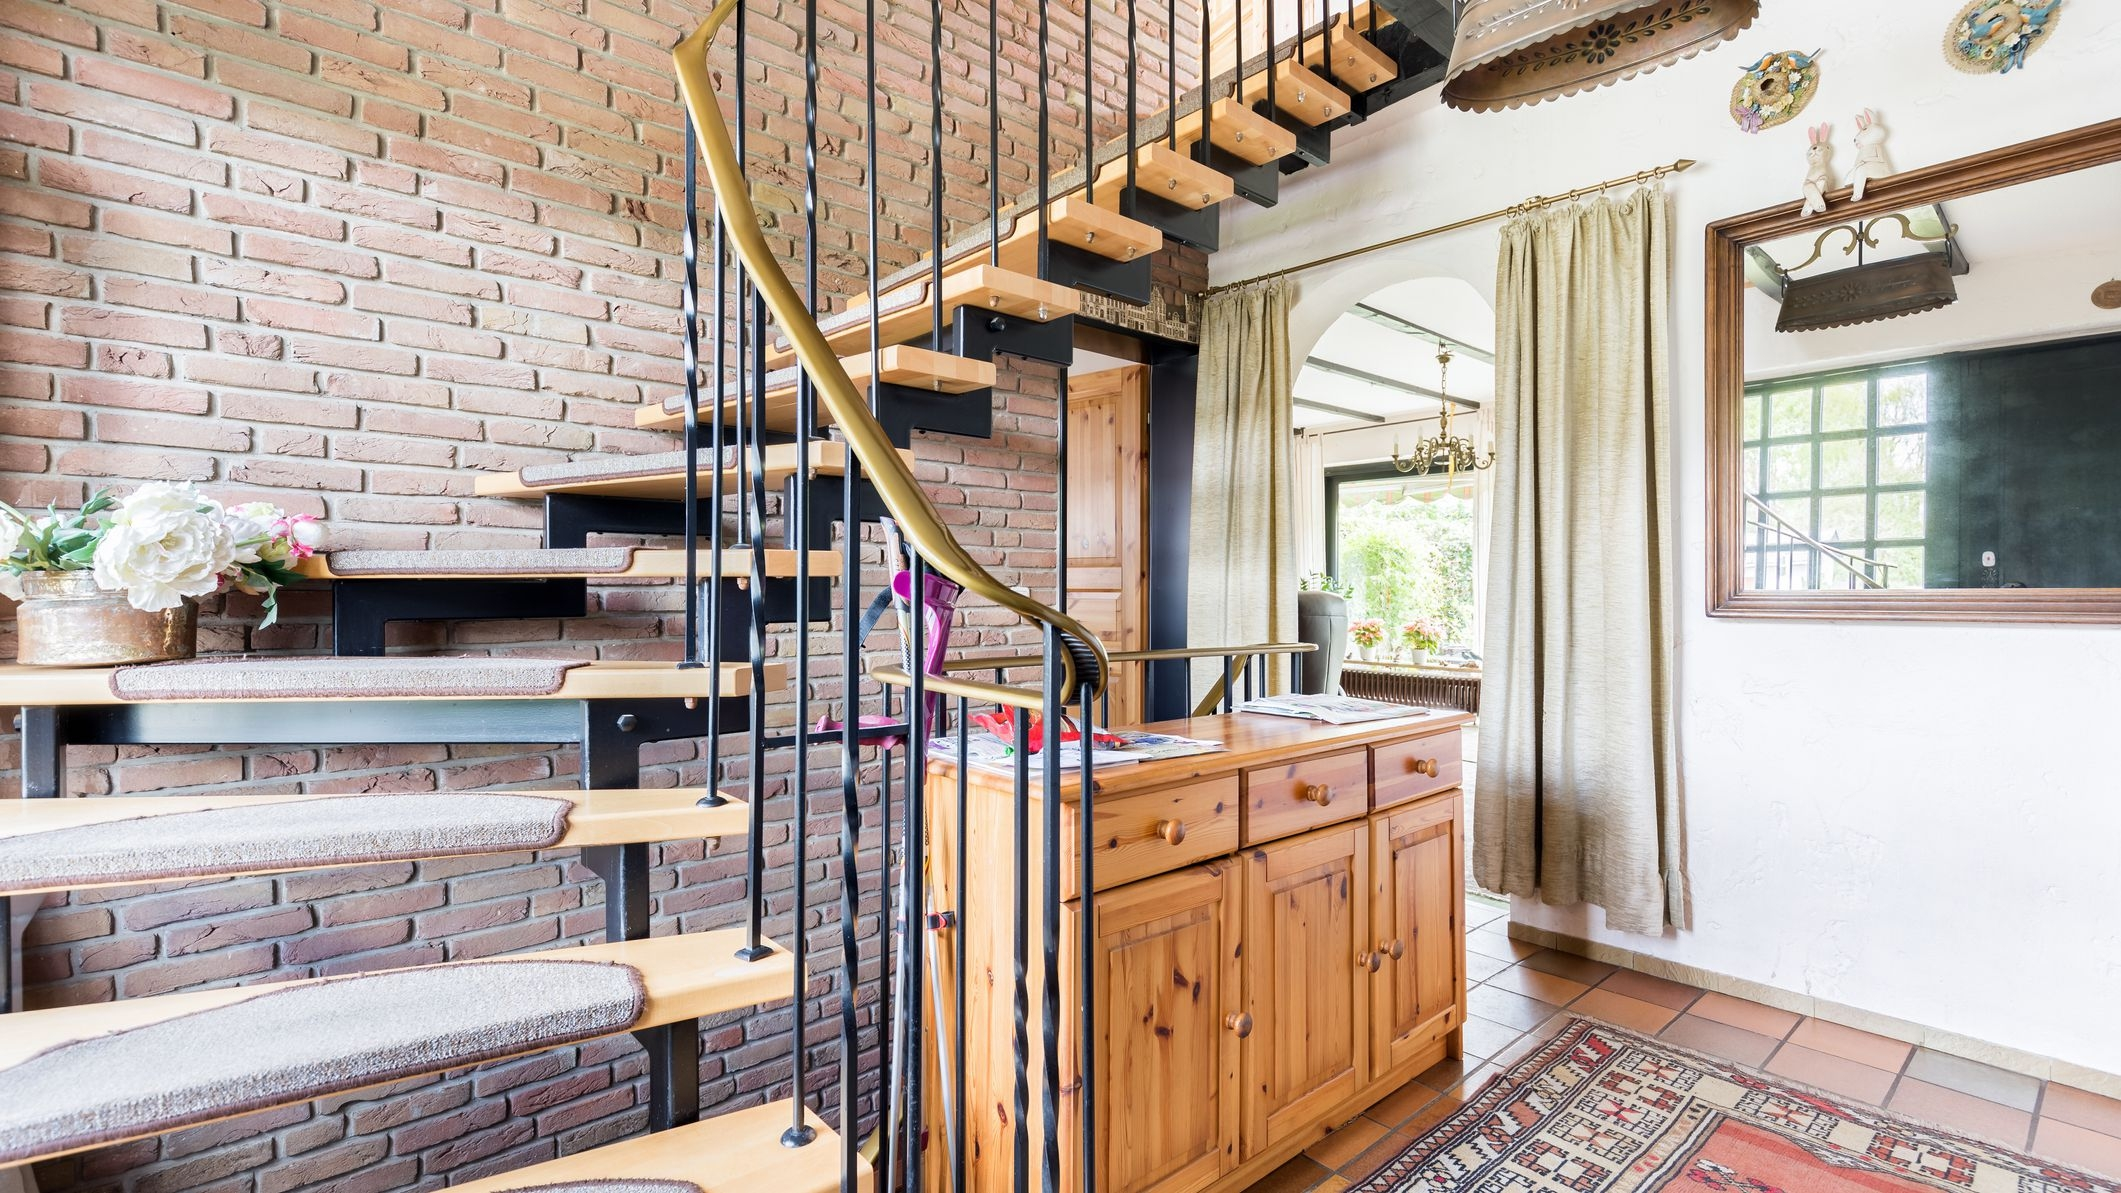 4 Decorative Ways To Dress Up A Stairway | Wooden Staircase Designs For Homes | Beautiful | Royal Wooden Stair | Residential | Interior | Iron